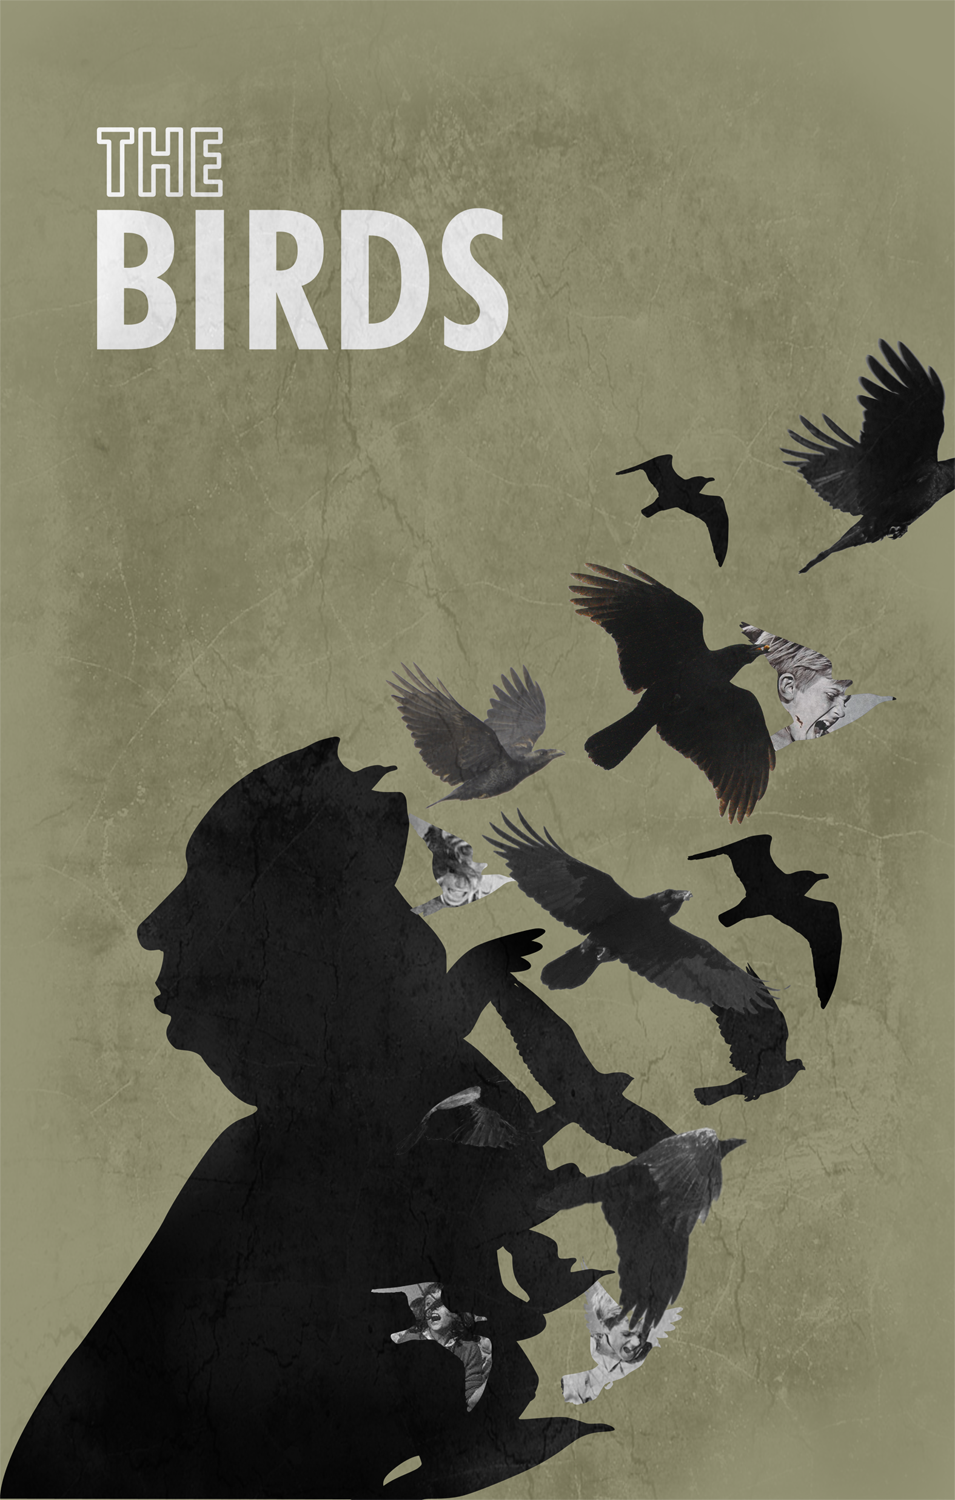 Design_The Birds.png